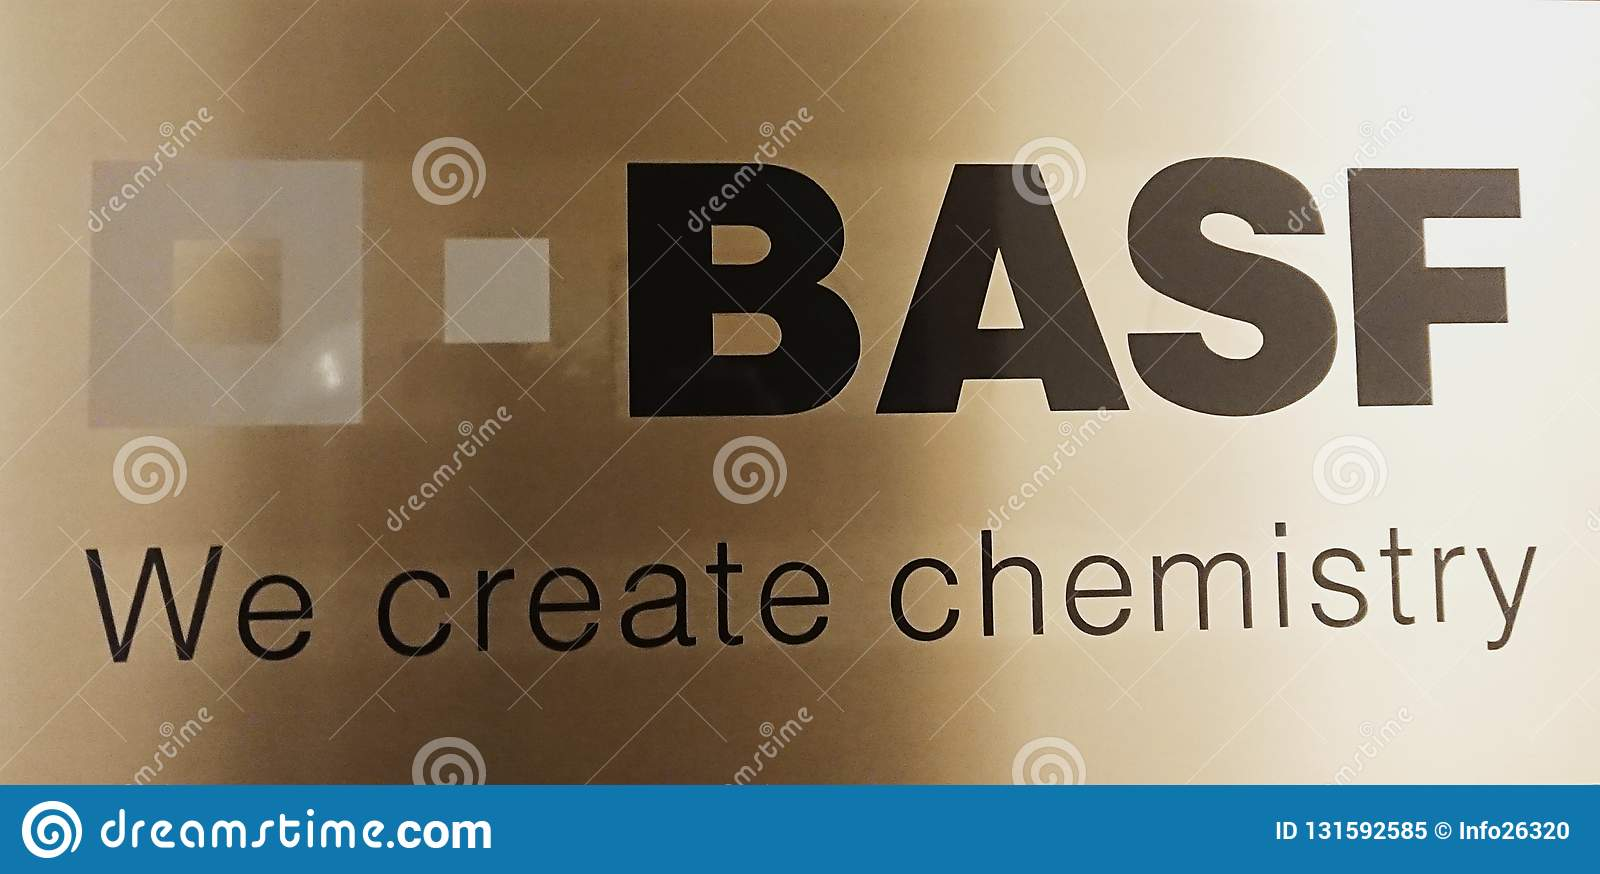 Symbol Of The German Chemical Company BASF Editorial Image